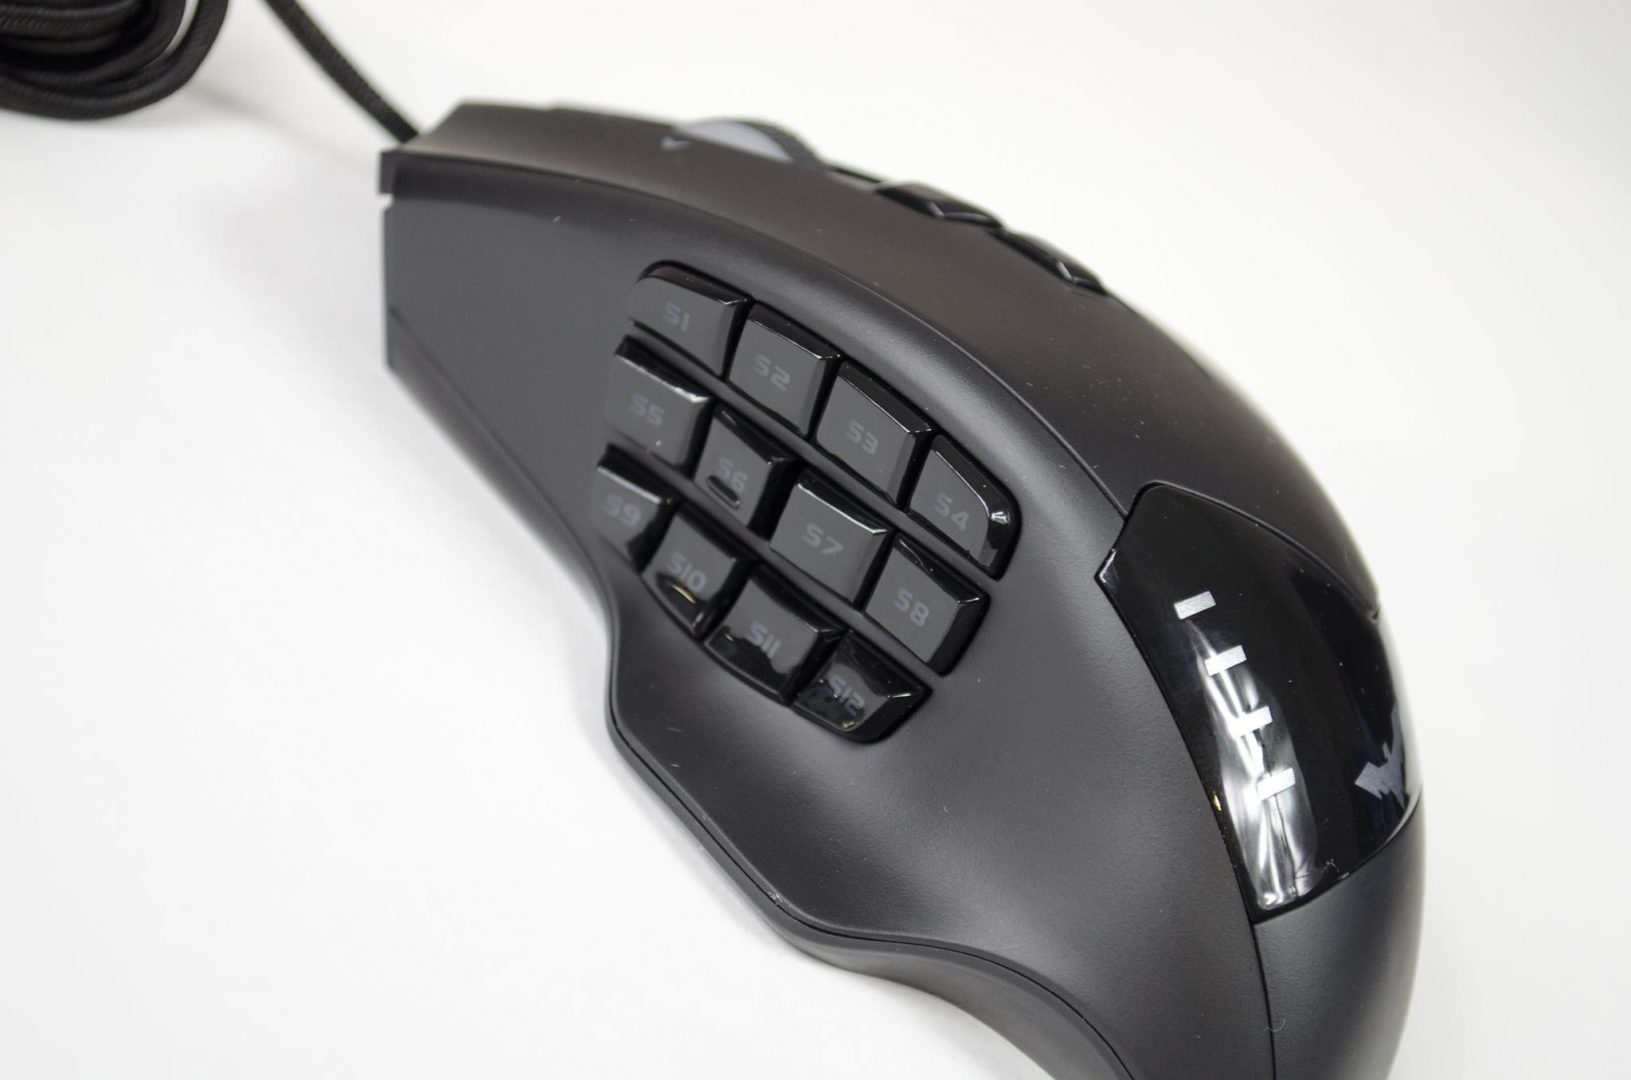 havit-hv-ms735-mouse-review_4